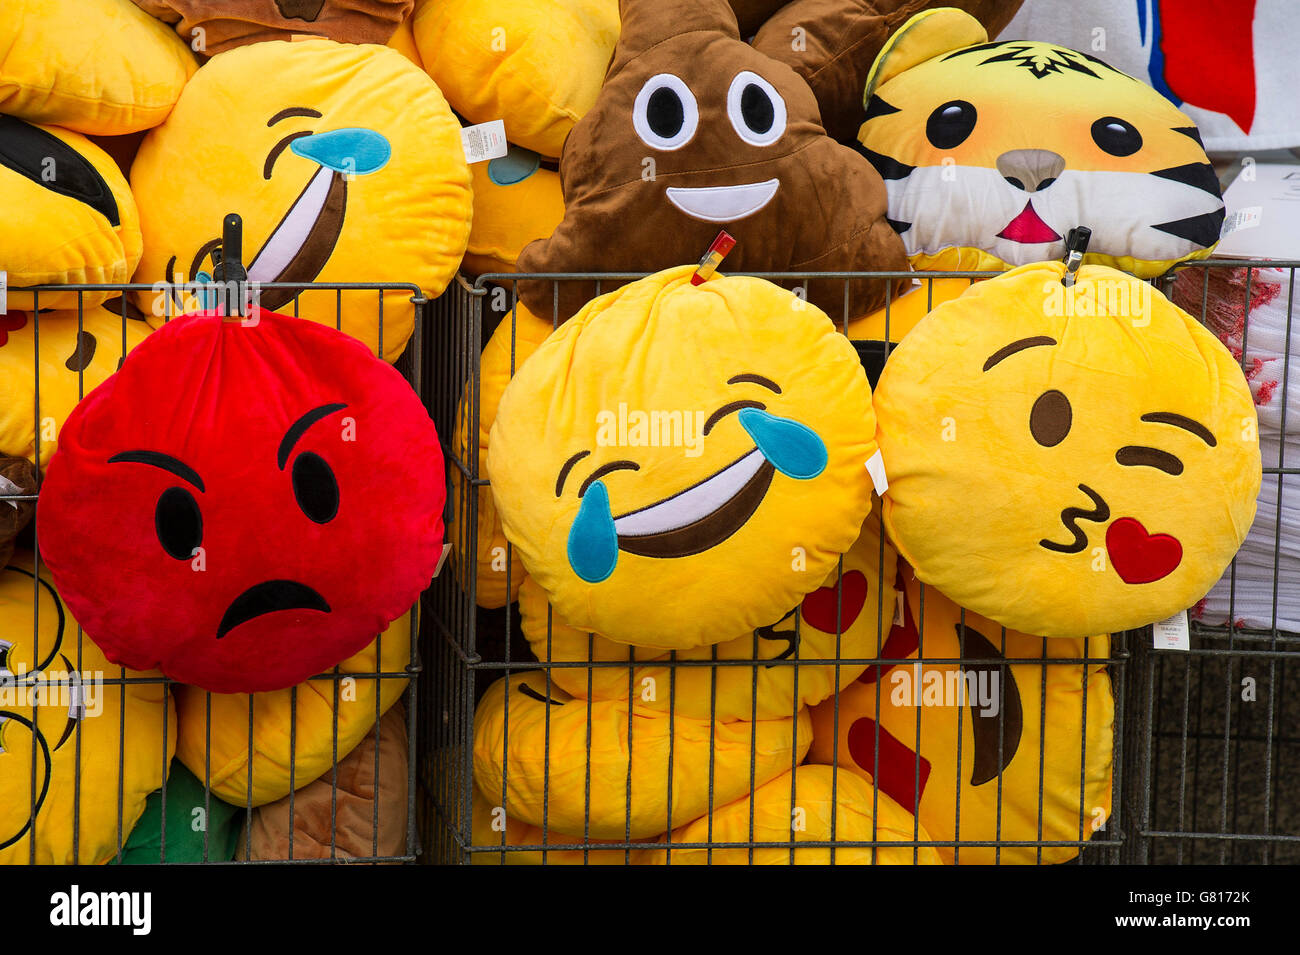 Colourful cushions with embroidered facial expressions. - Stock Image